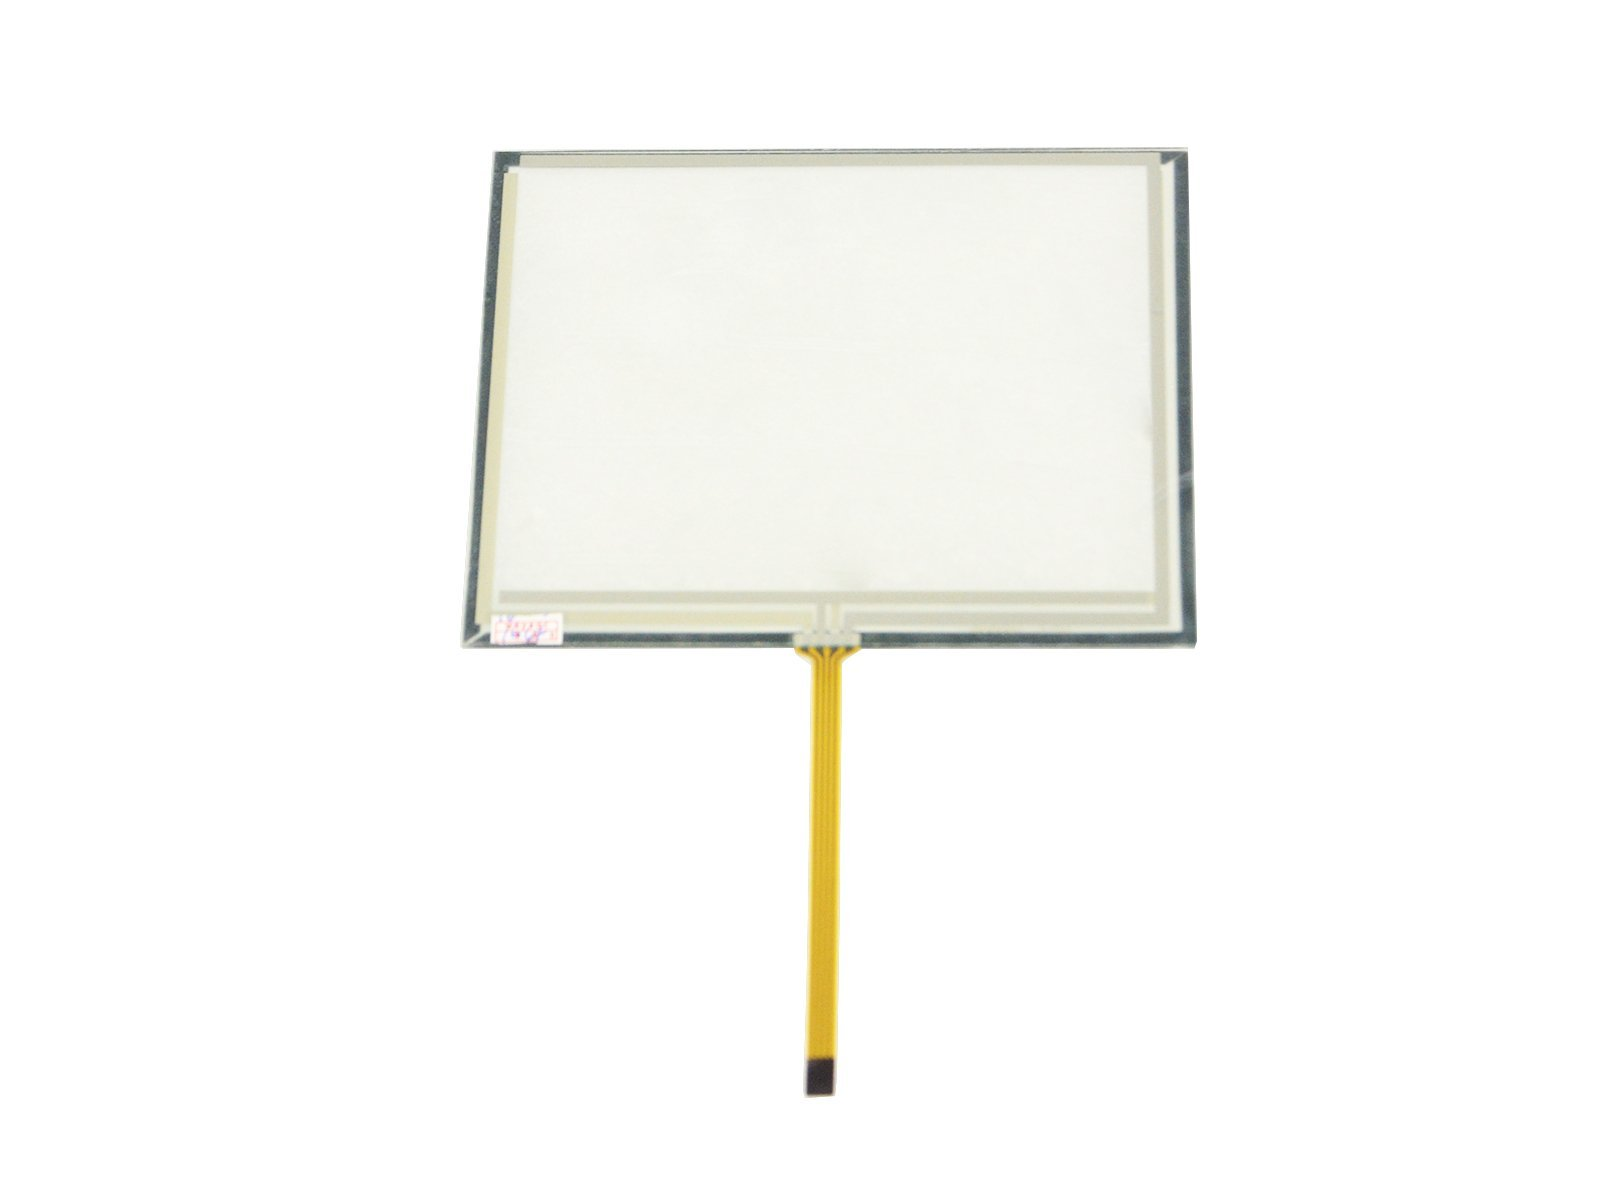 NJYTouch 5.6inch 4 Wire Resistive Touch Panel Digitizer 126x100mm For 5.6 inch AT056TN52 AT056TN53 LCD Screen With 4 Wire USB Driver Controller Kit by NJYTouch (Image #2)